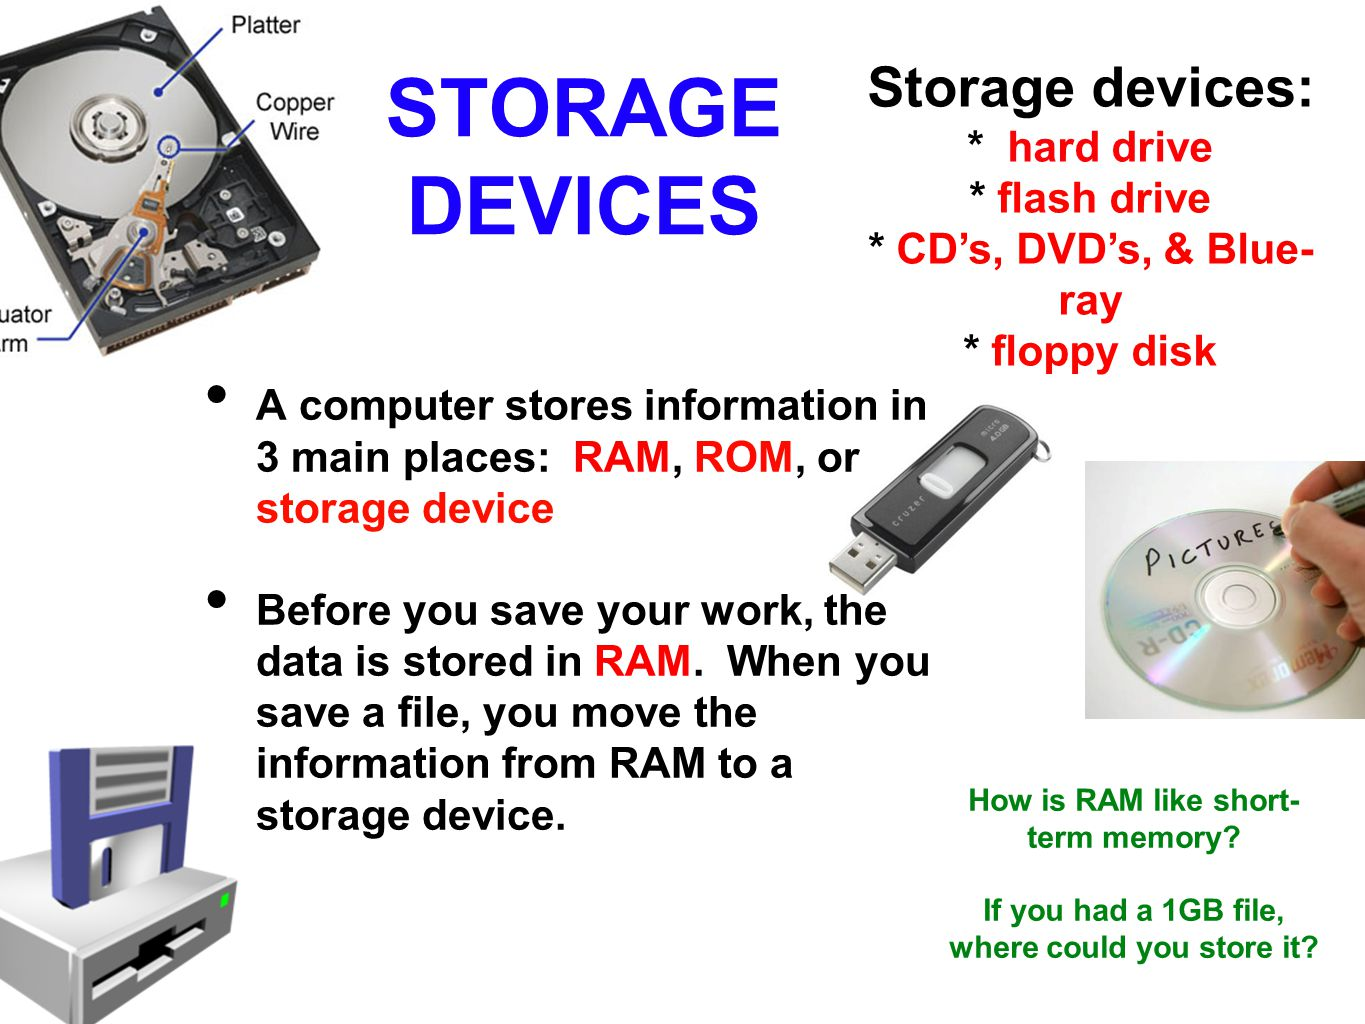 STORAGE DEVICES Storage devices: * hard drive * flash drive